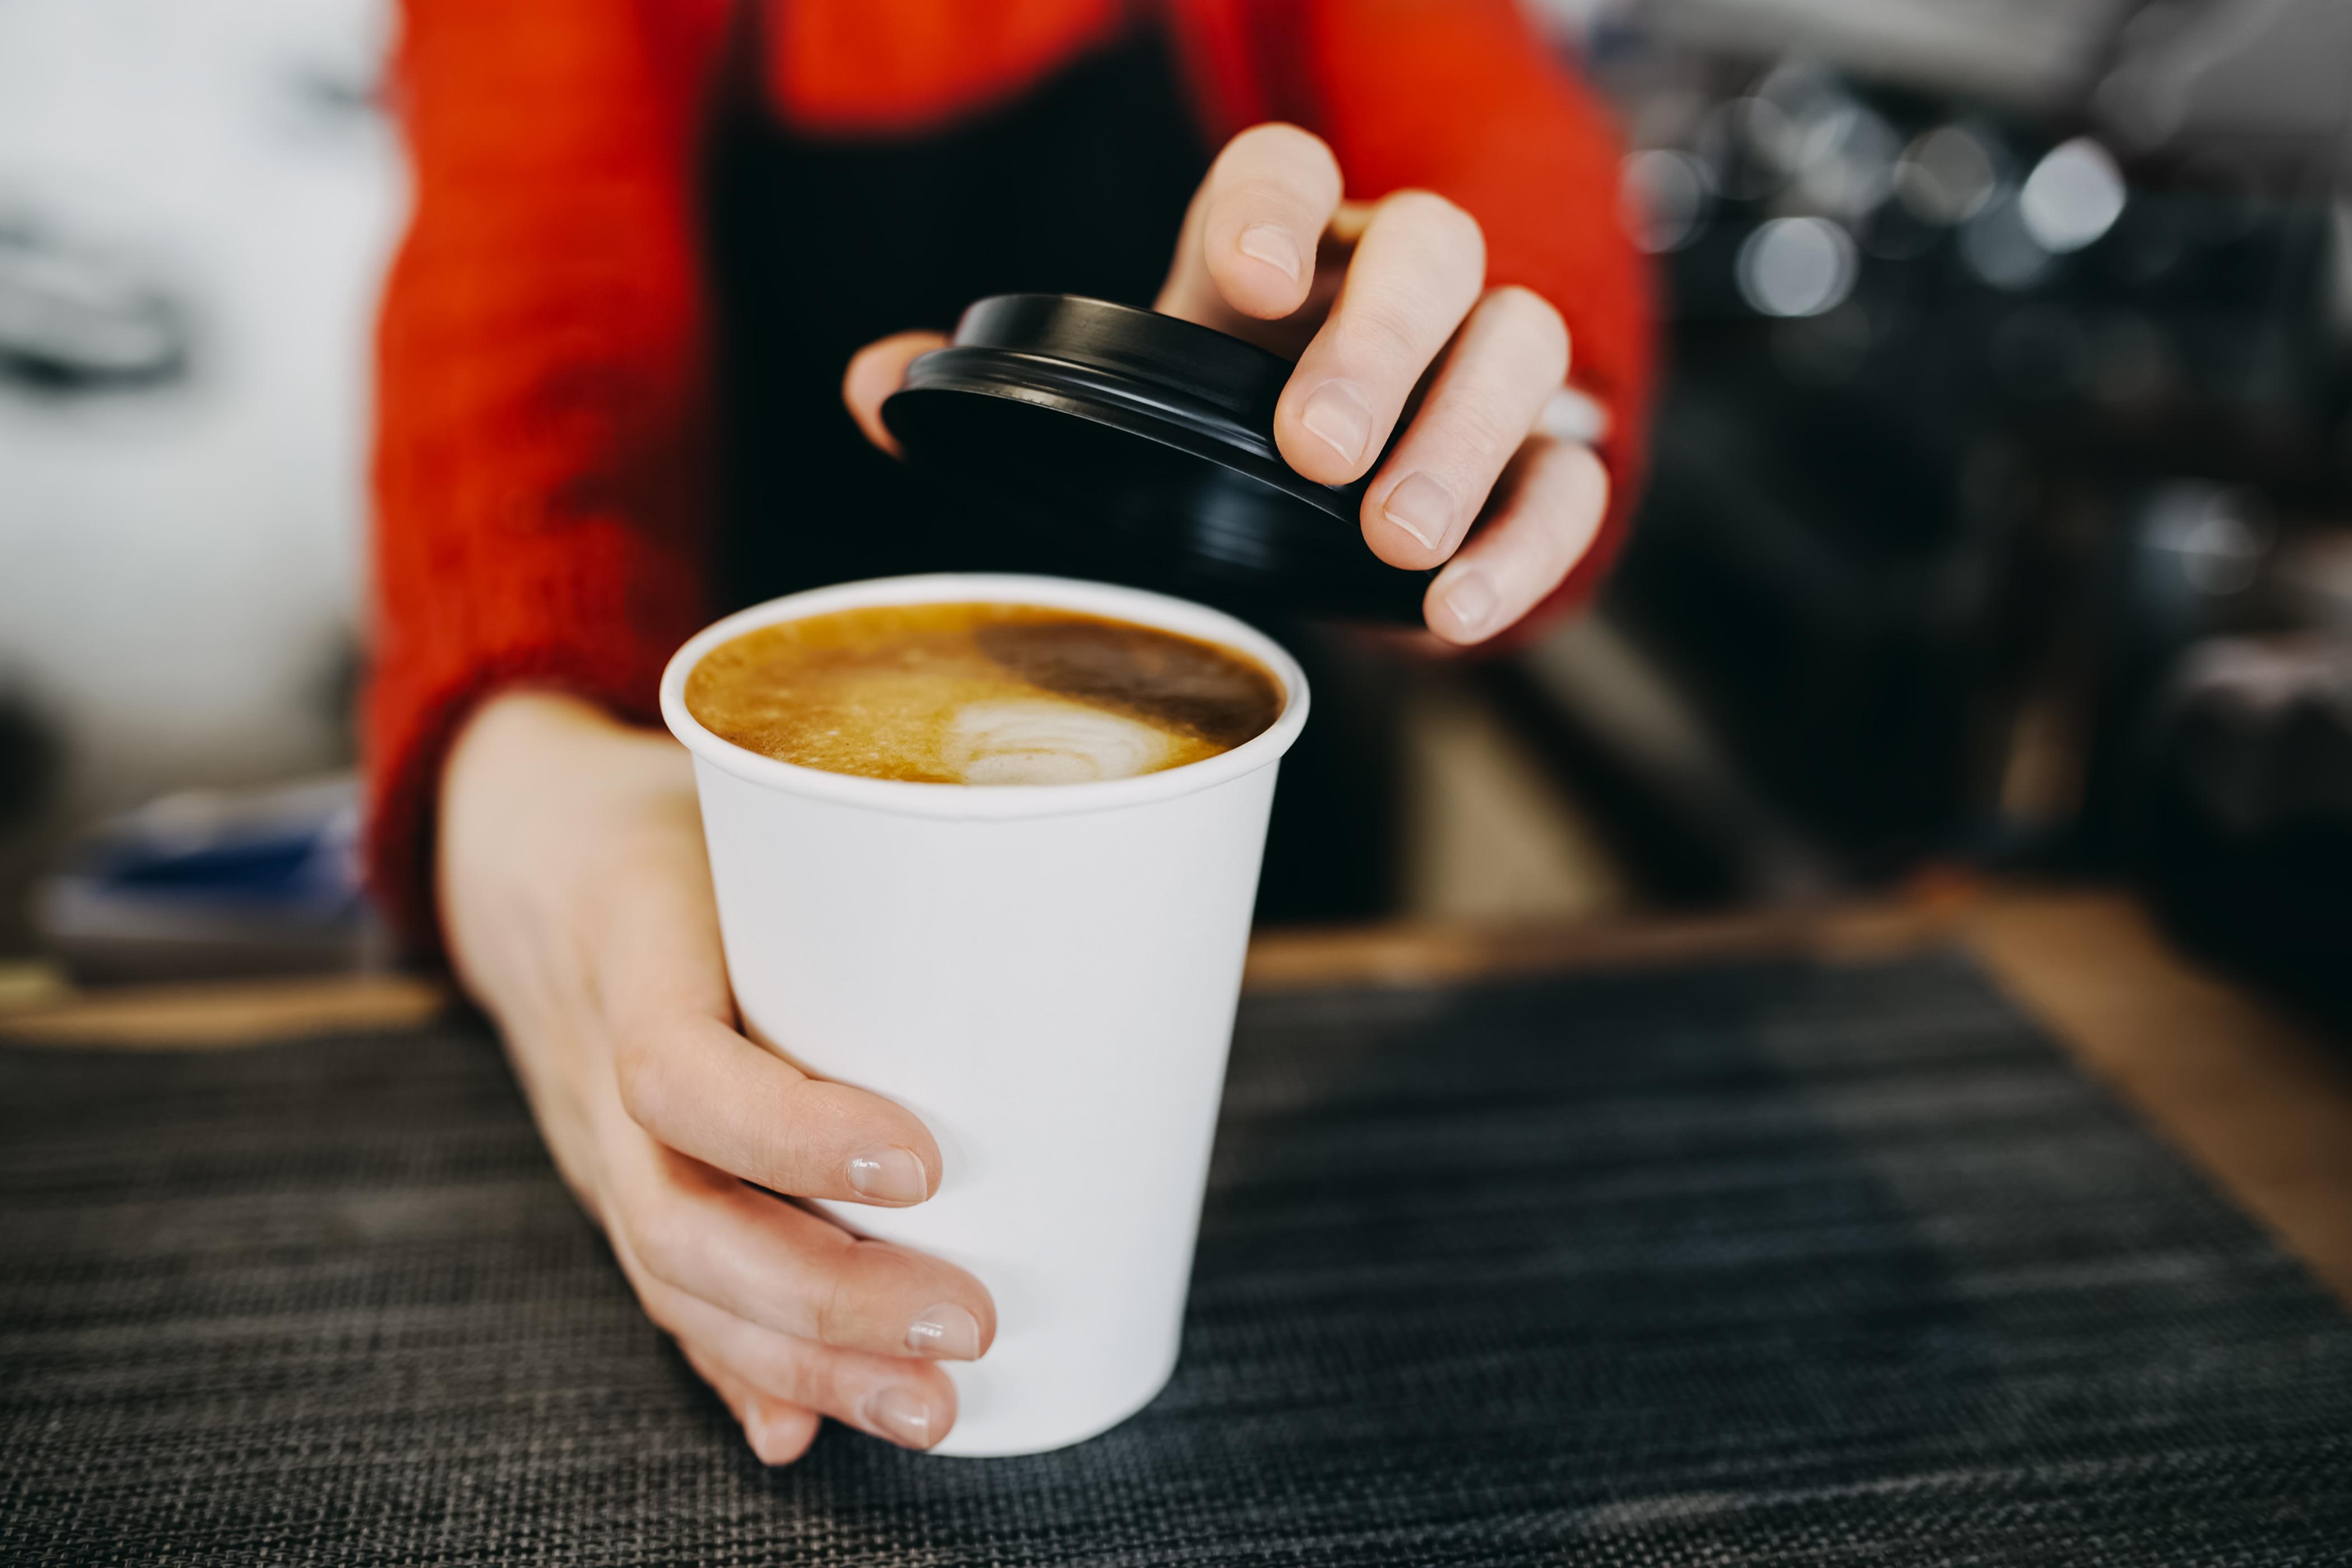 A barista handing over a white cup of coffee.